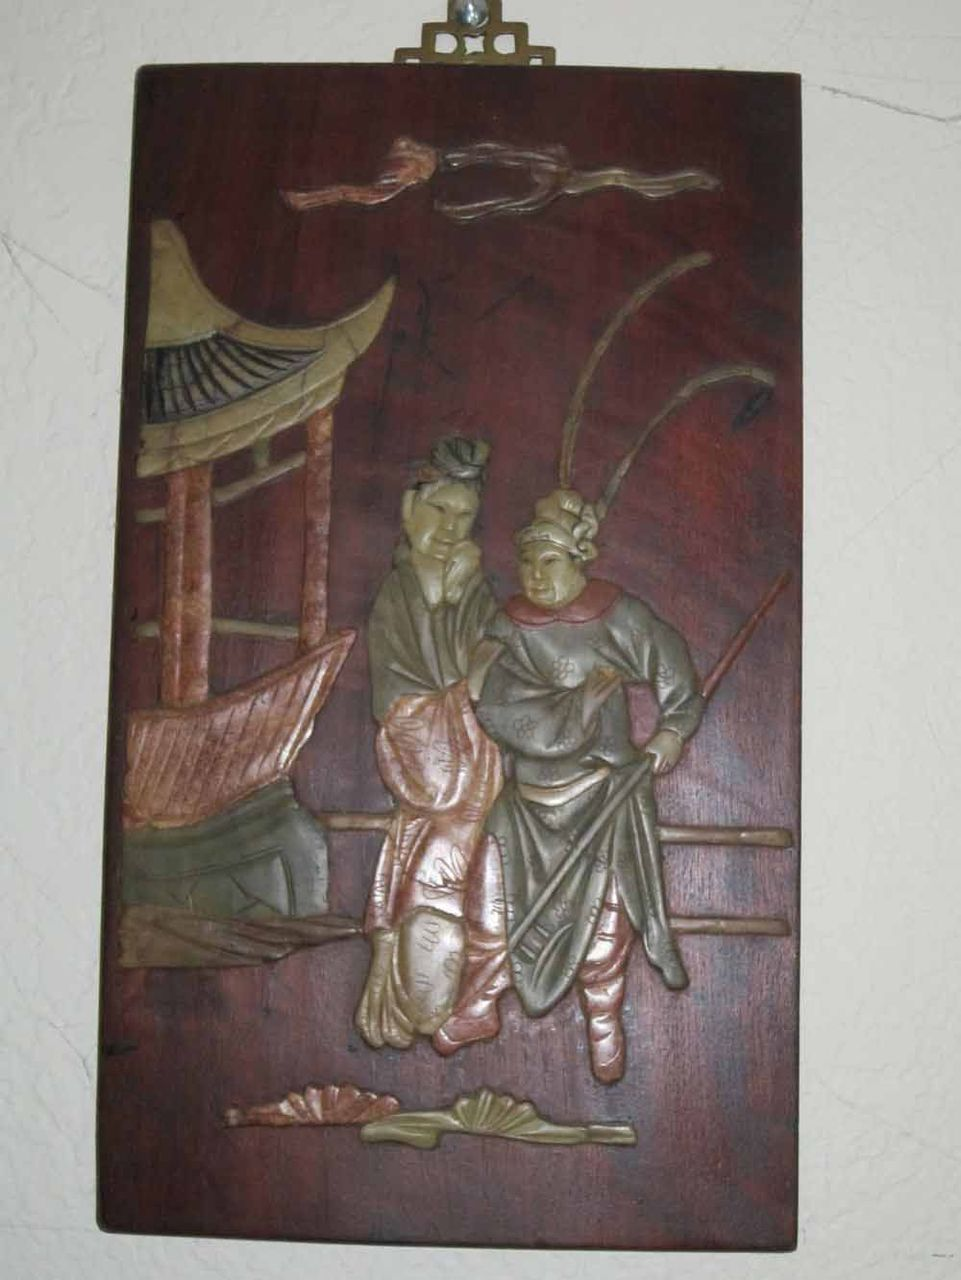 3 Pieces Wall Decor For Living Room: Carved Oriental Wood Wall Plaques 3 Pieces From